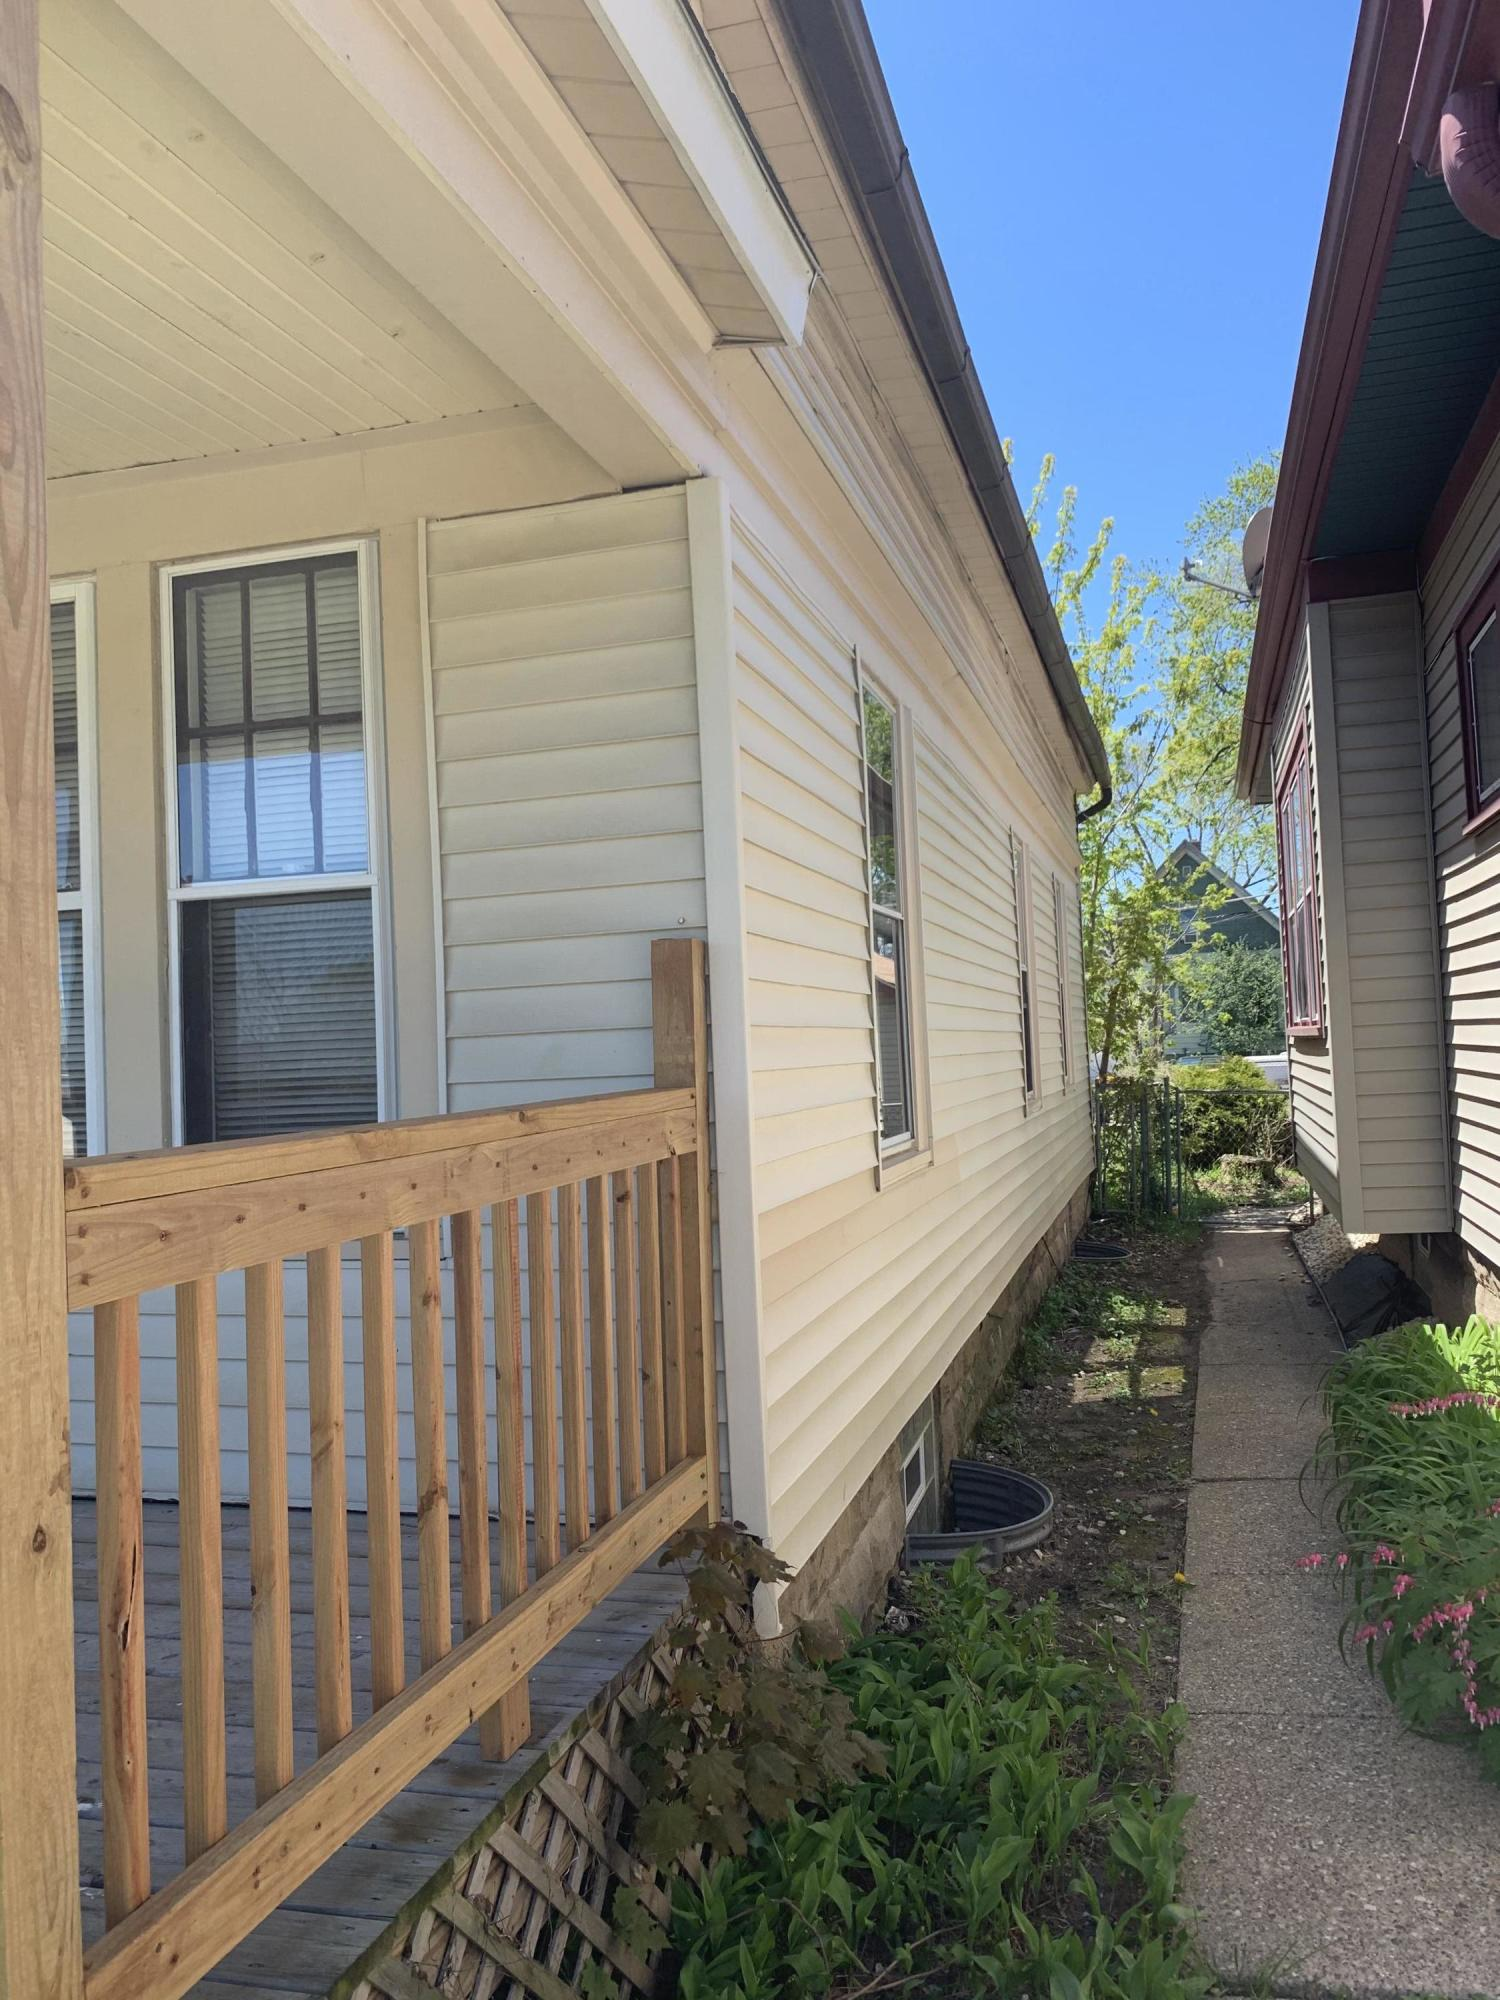 2123 74th St, West Allis, Wisconsin 53219, 2 Bedrooms Bedrooms, 5 Rooms Rooms,1 BathroomBathrooms,Single-Family,For Sale,74th St,1690365